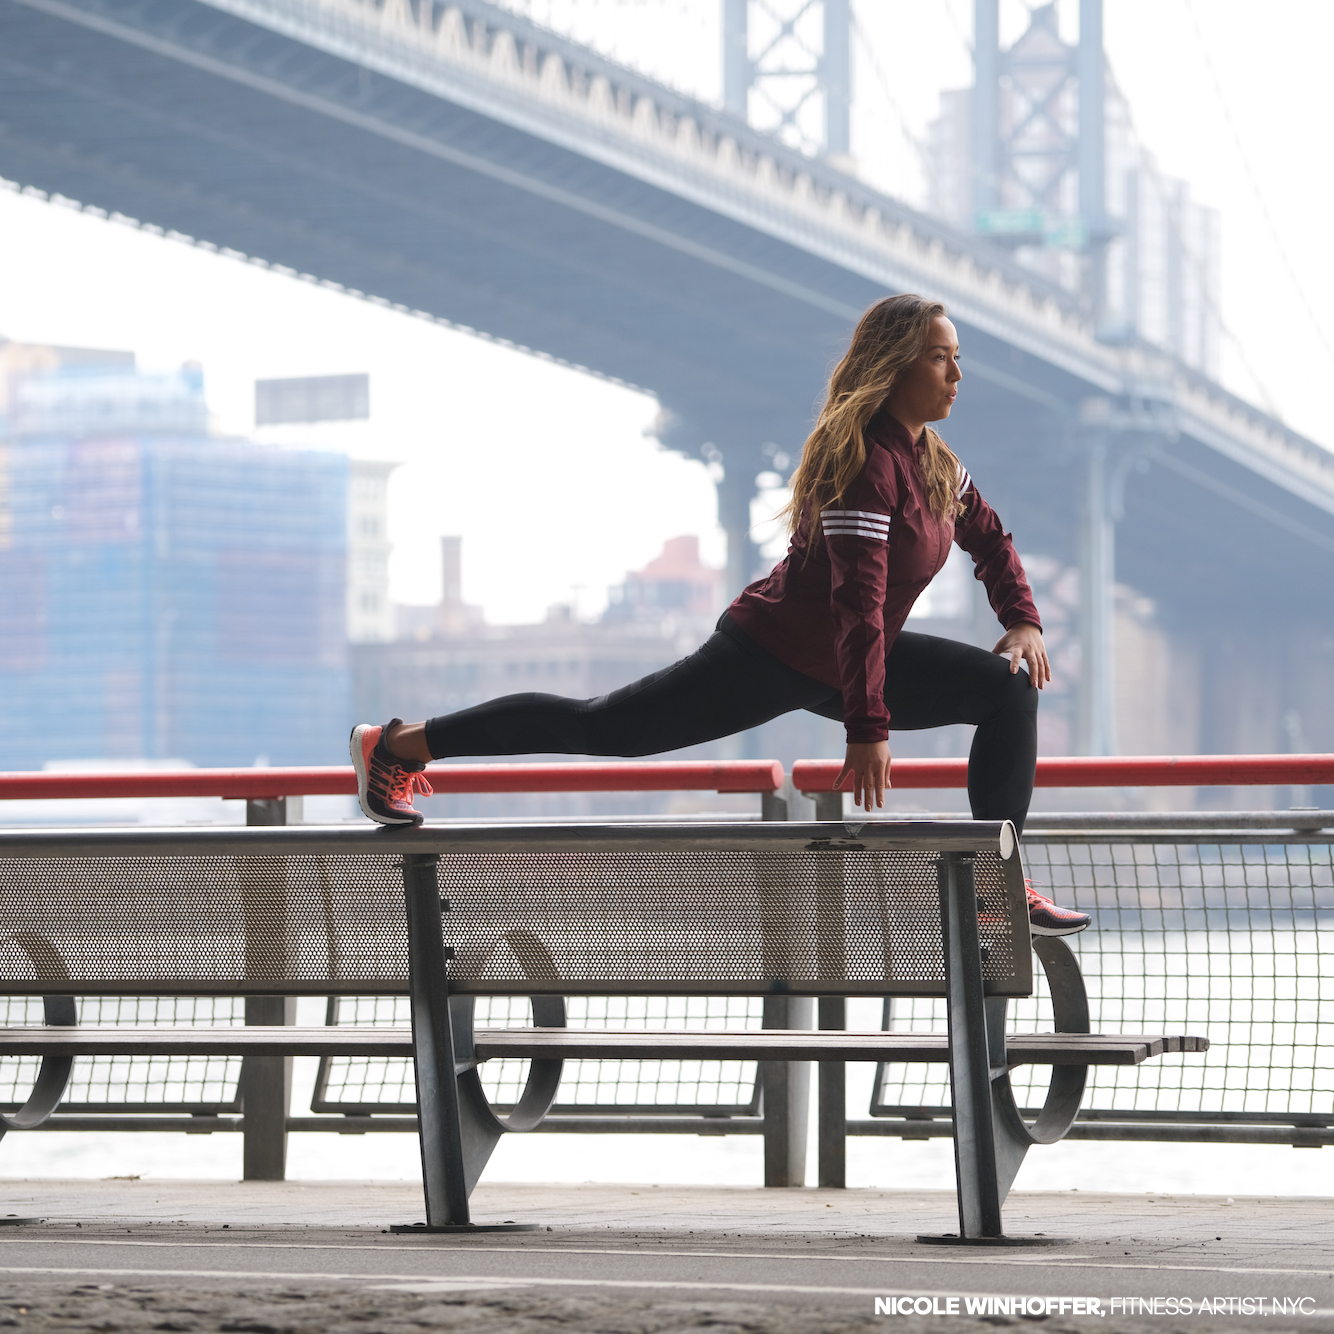 Adidas is launching a new quarterly  women-only subscription service. The first shipment was curated by fitness artist Nicole Winhoffer, seen above.